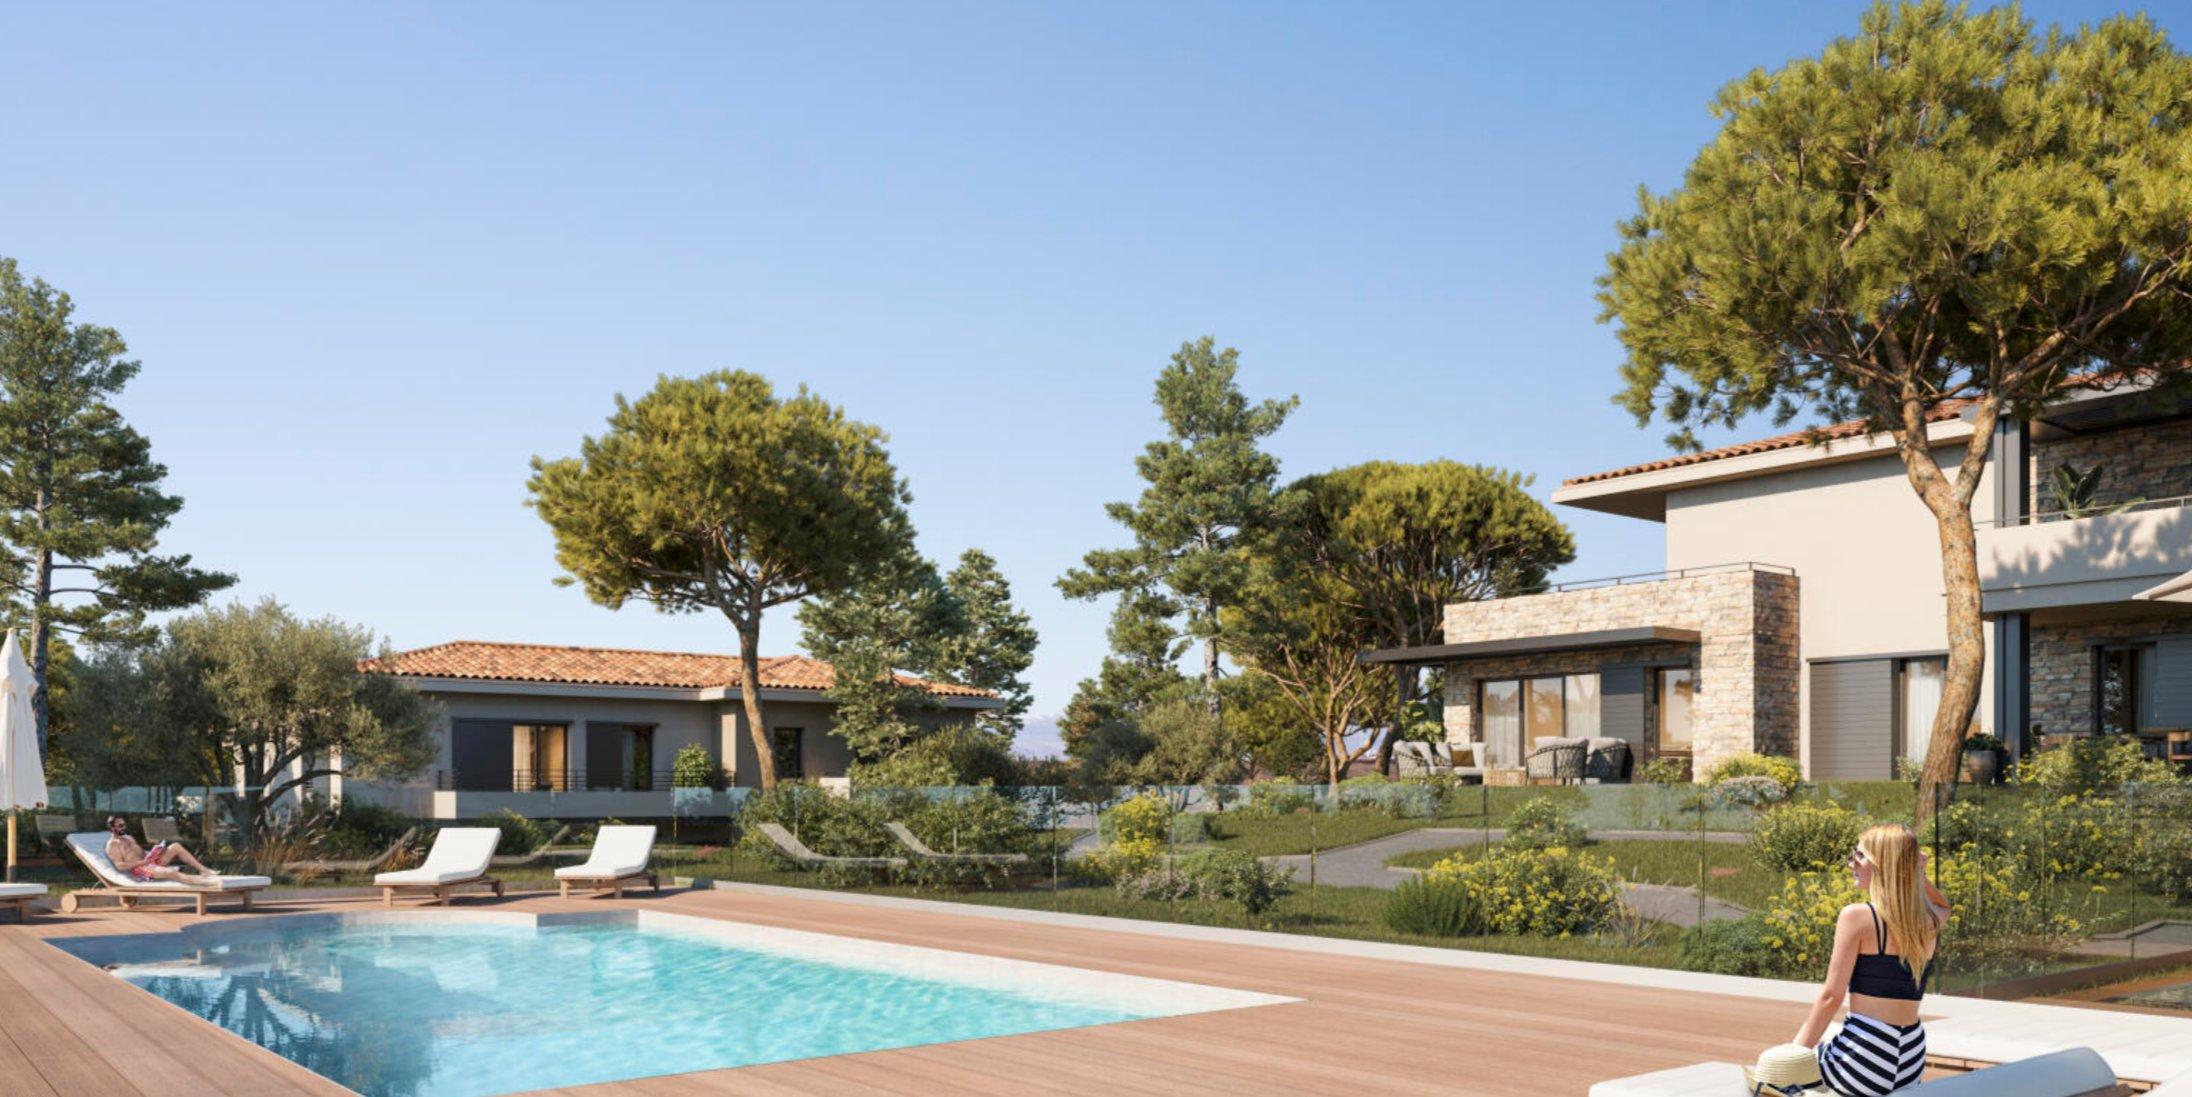 * New * New apartment in Sainte-Maxime